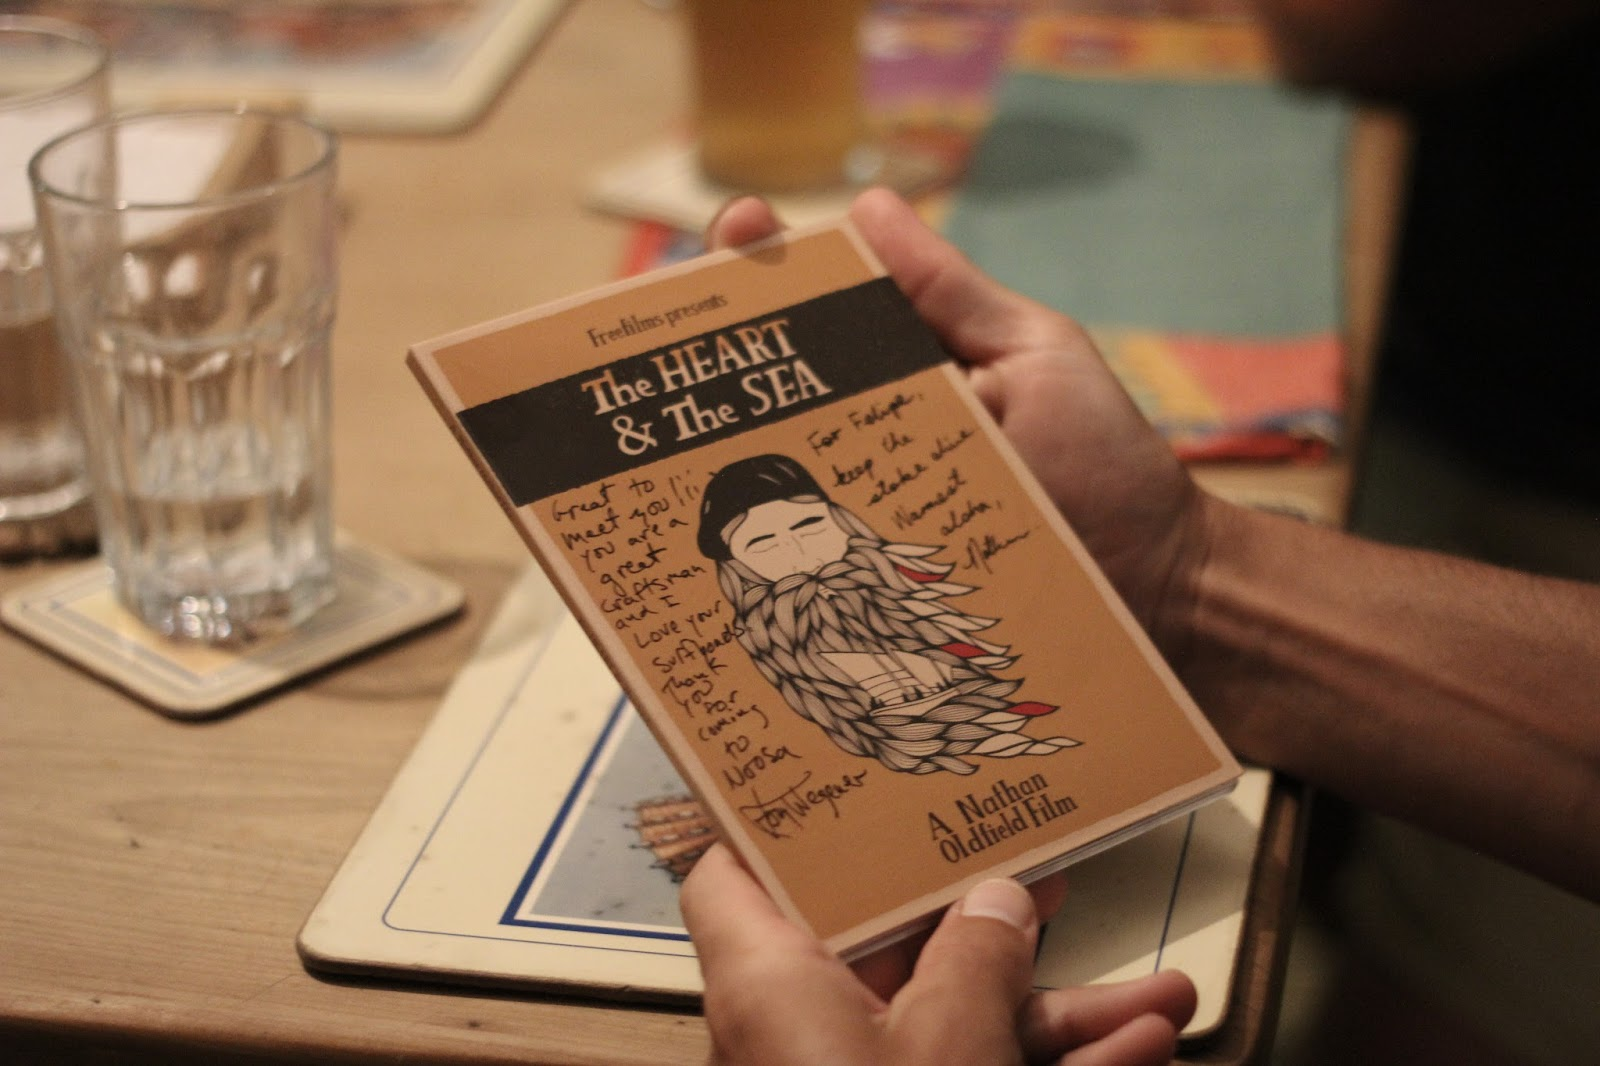 16-03-2016-australia-siebert-surfboards-17